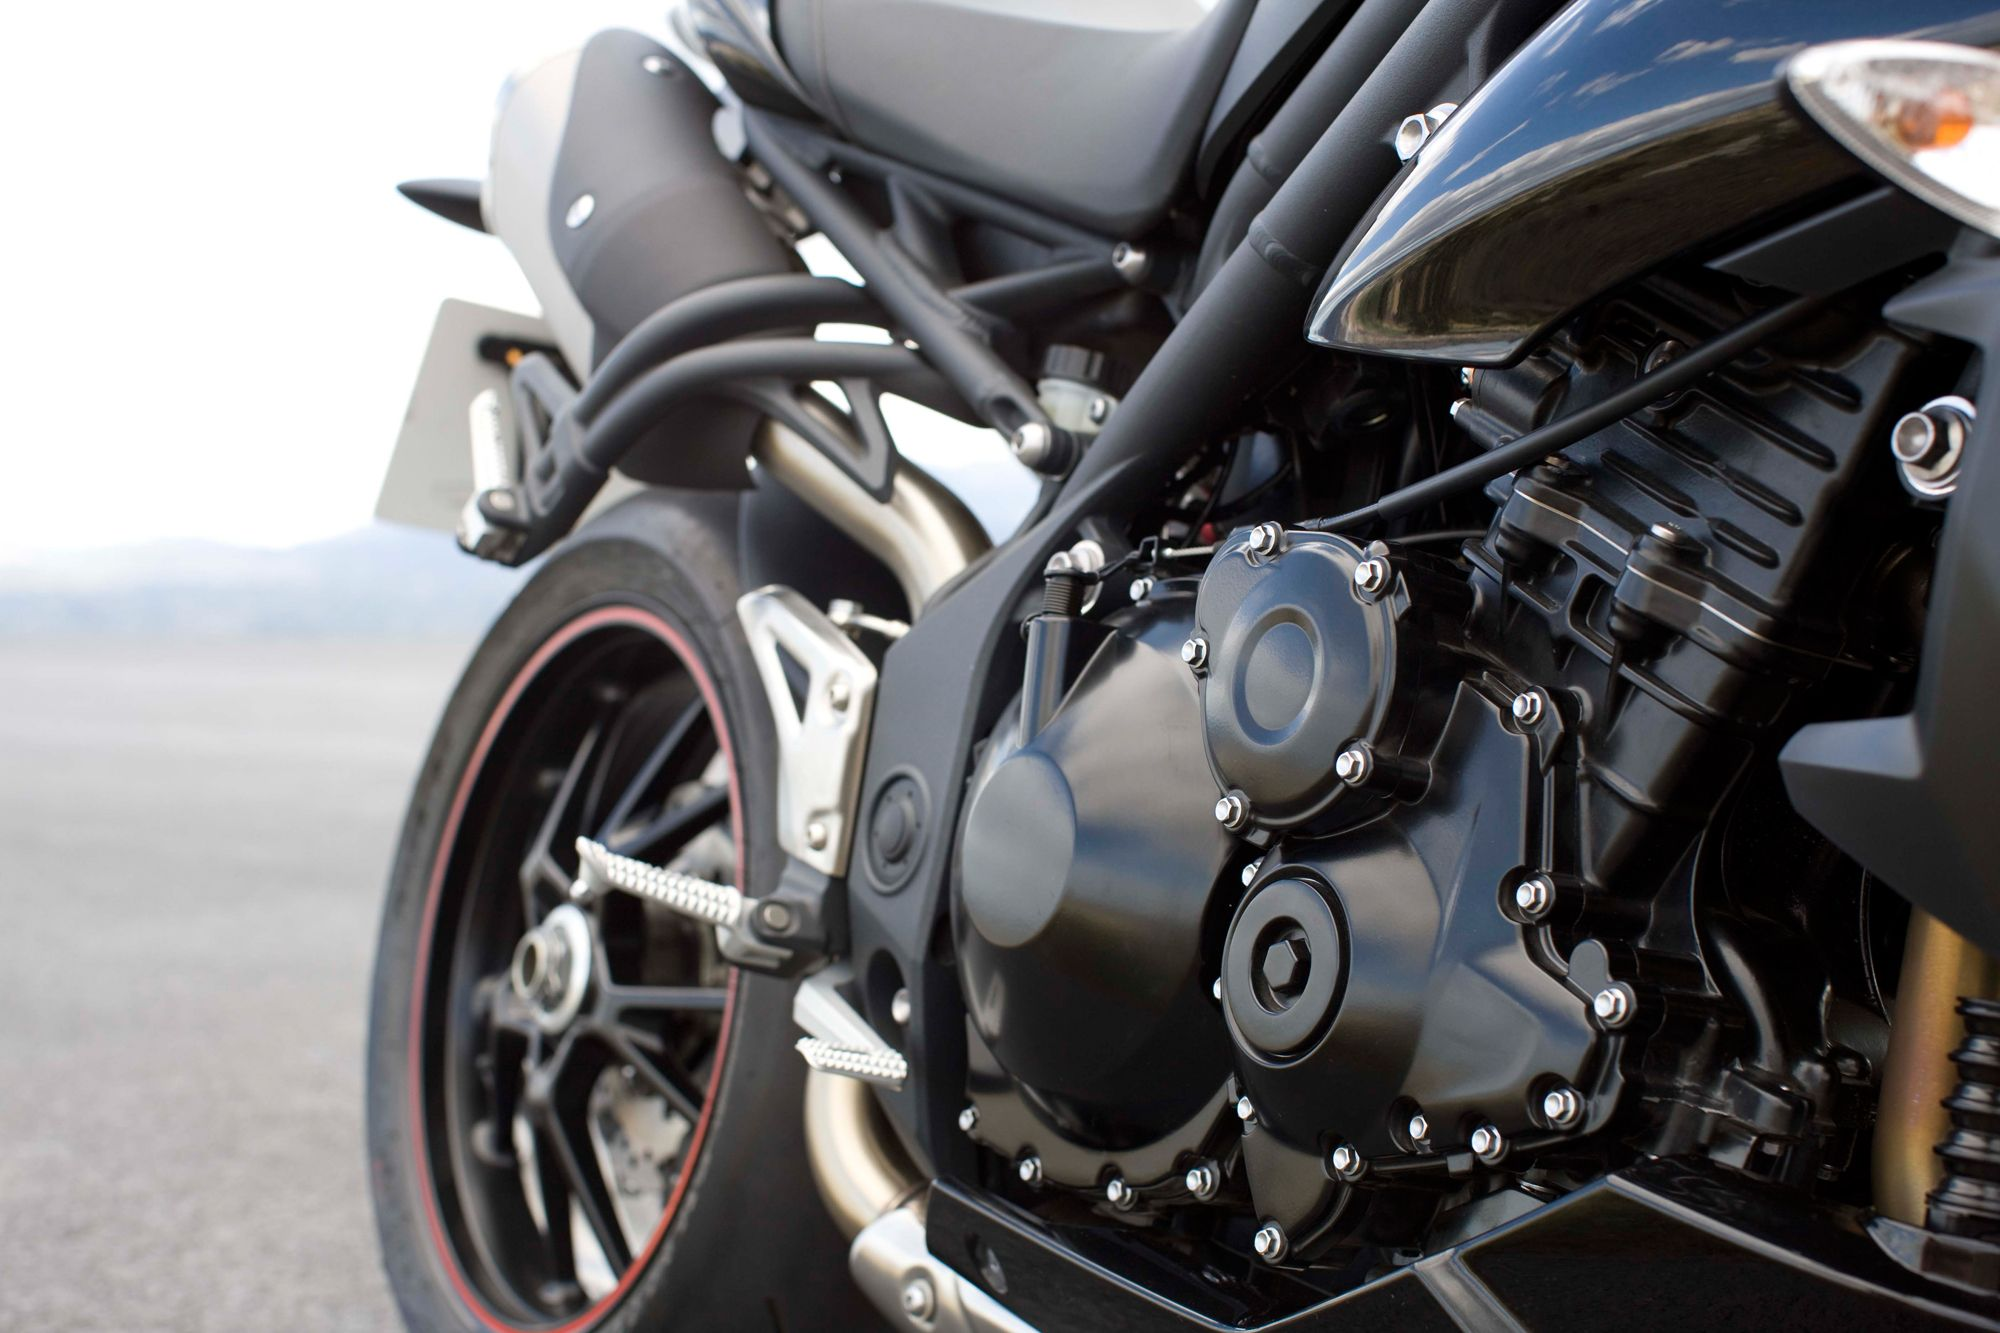 triumph speed four 600 technische daten Ducati monster 1200 and 1200 s - first ride thanks to brembo monobloc m50 4-piston front calipers pinching 330mm semi six-speed: final drive|chain: front.